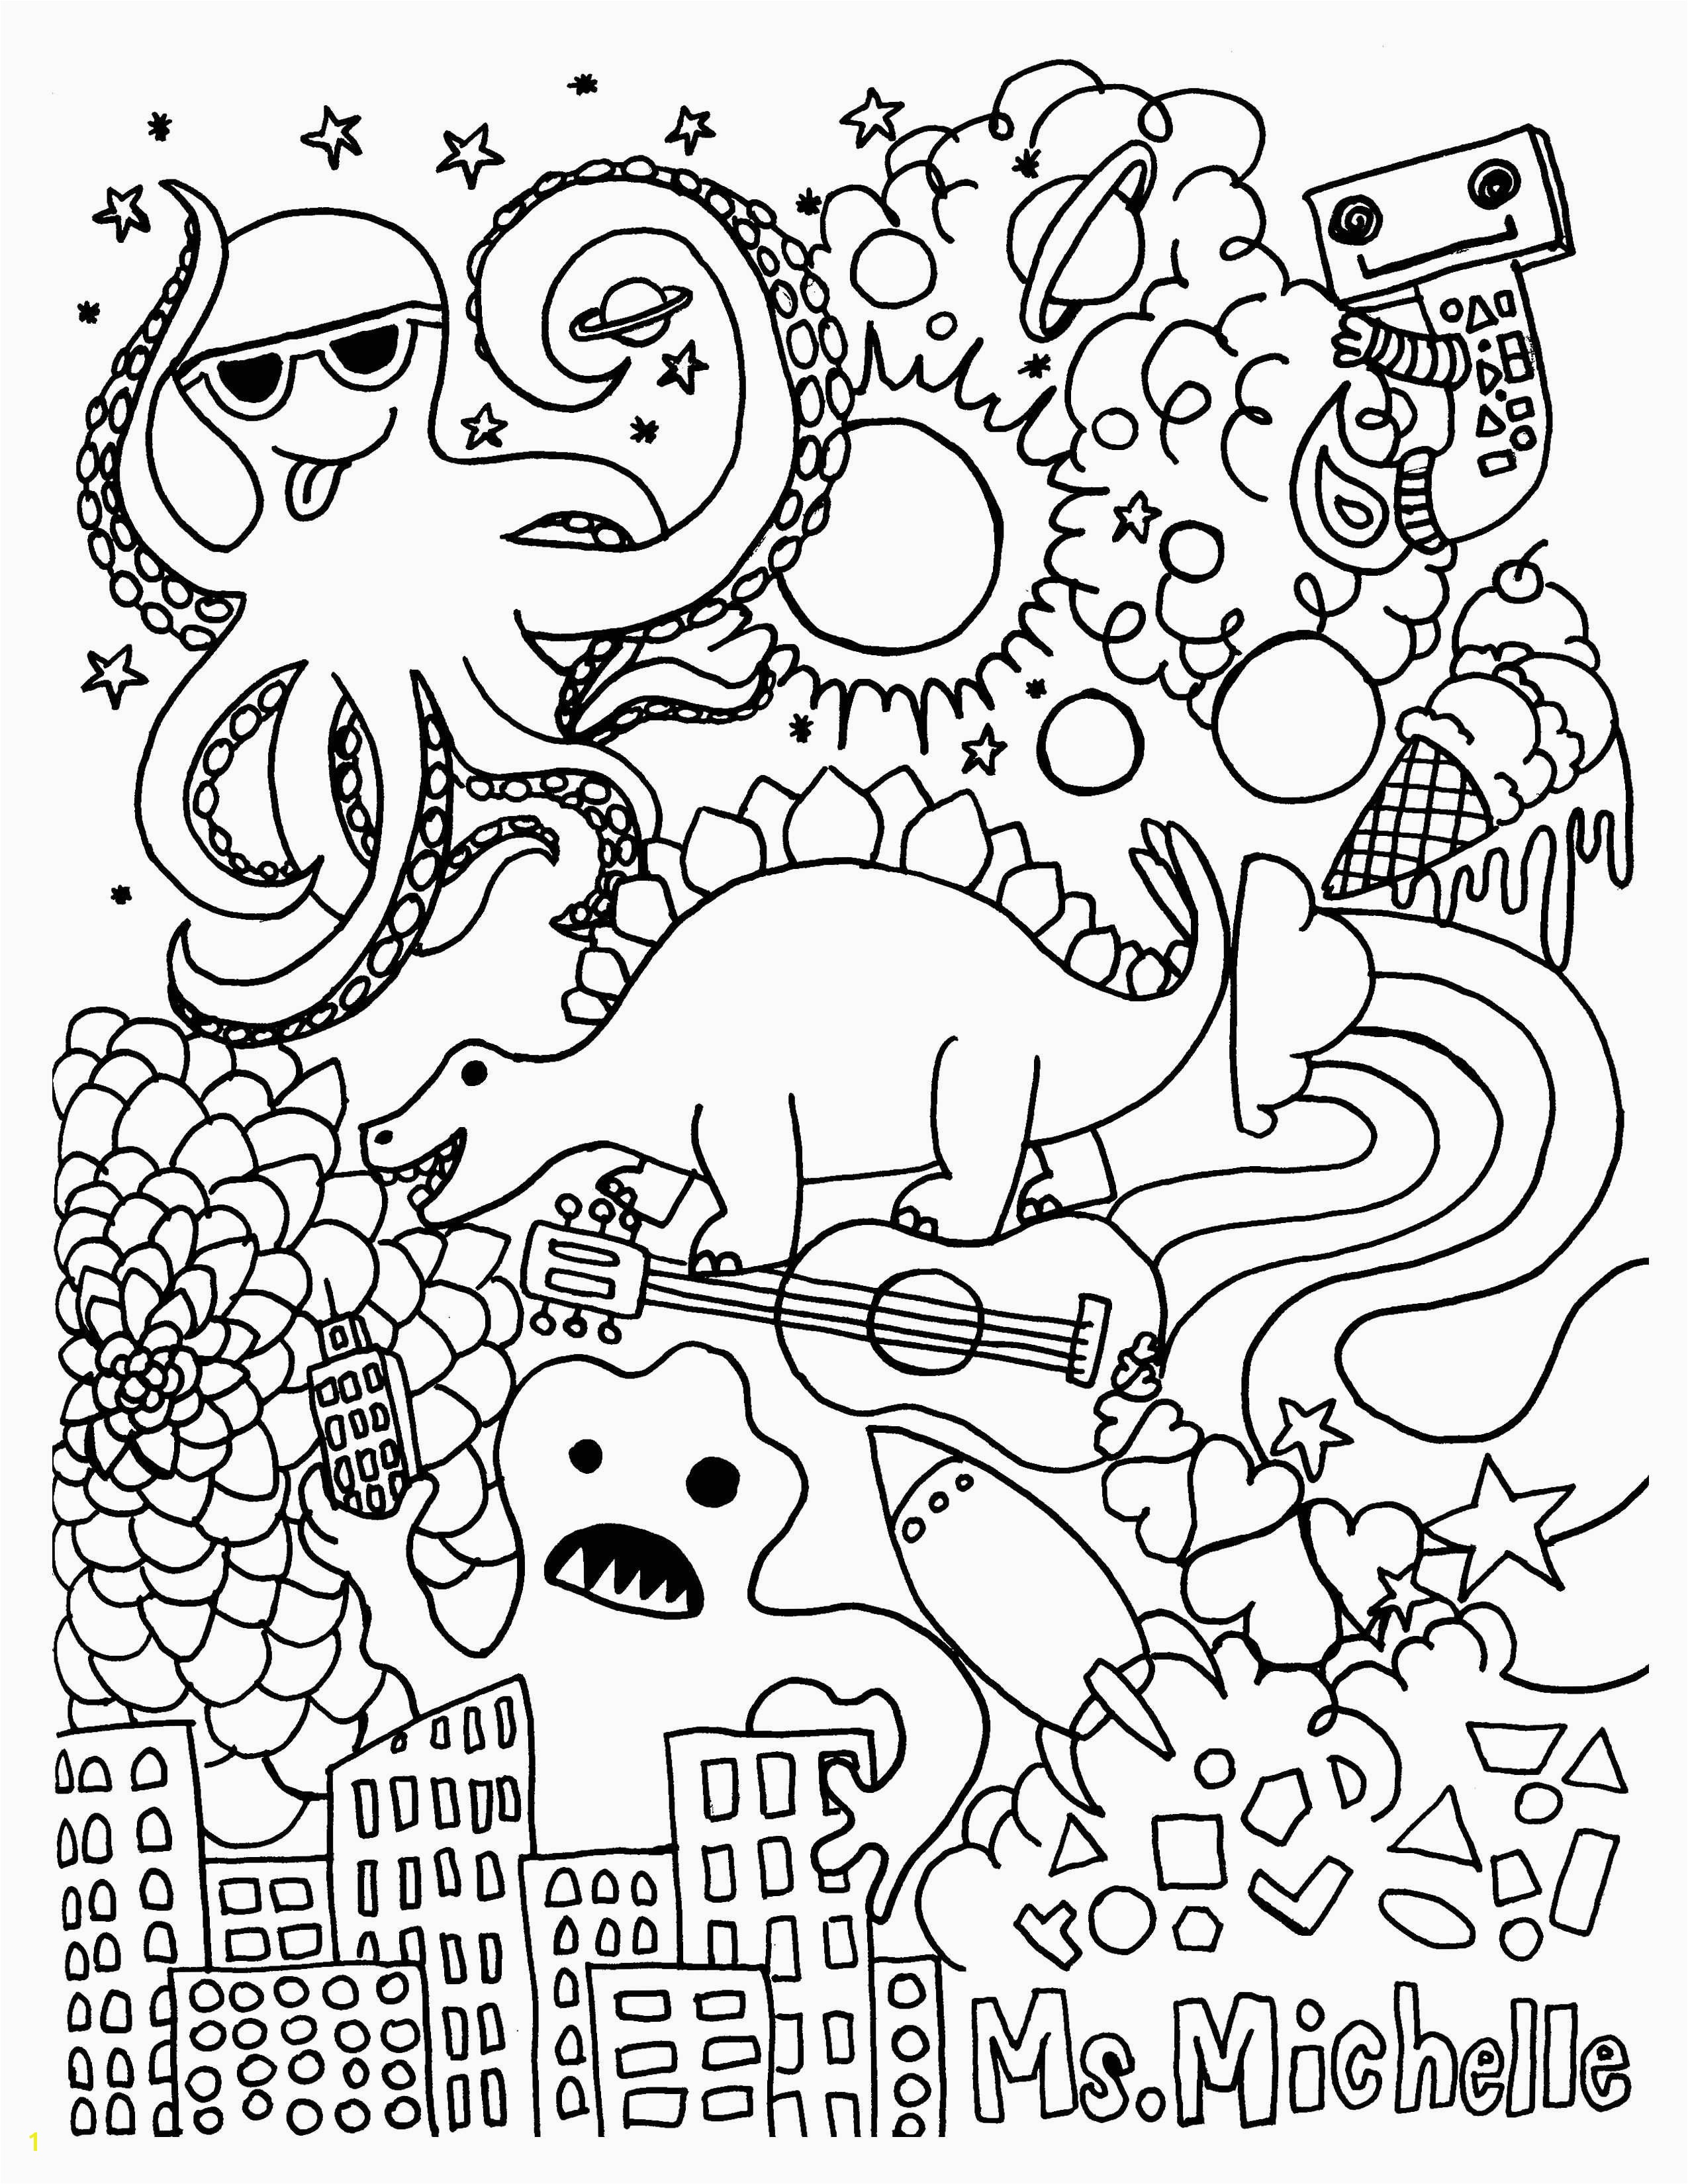 Autumn Coloring Pages Free Printable New Free Coloring Pages for Halloween Unique Best Coloring Page Adult Od